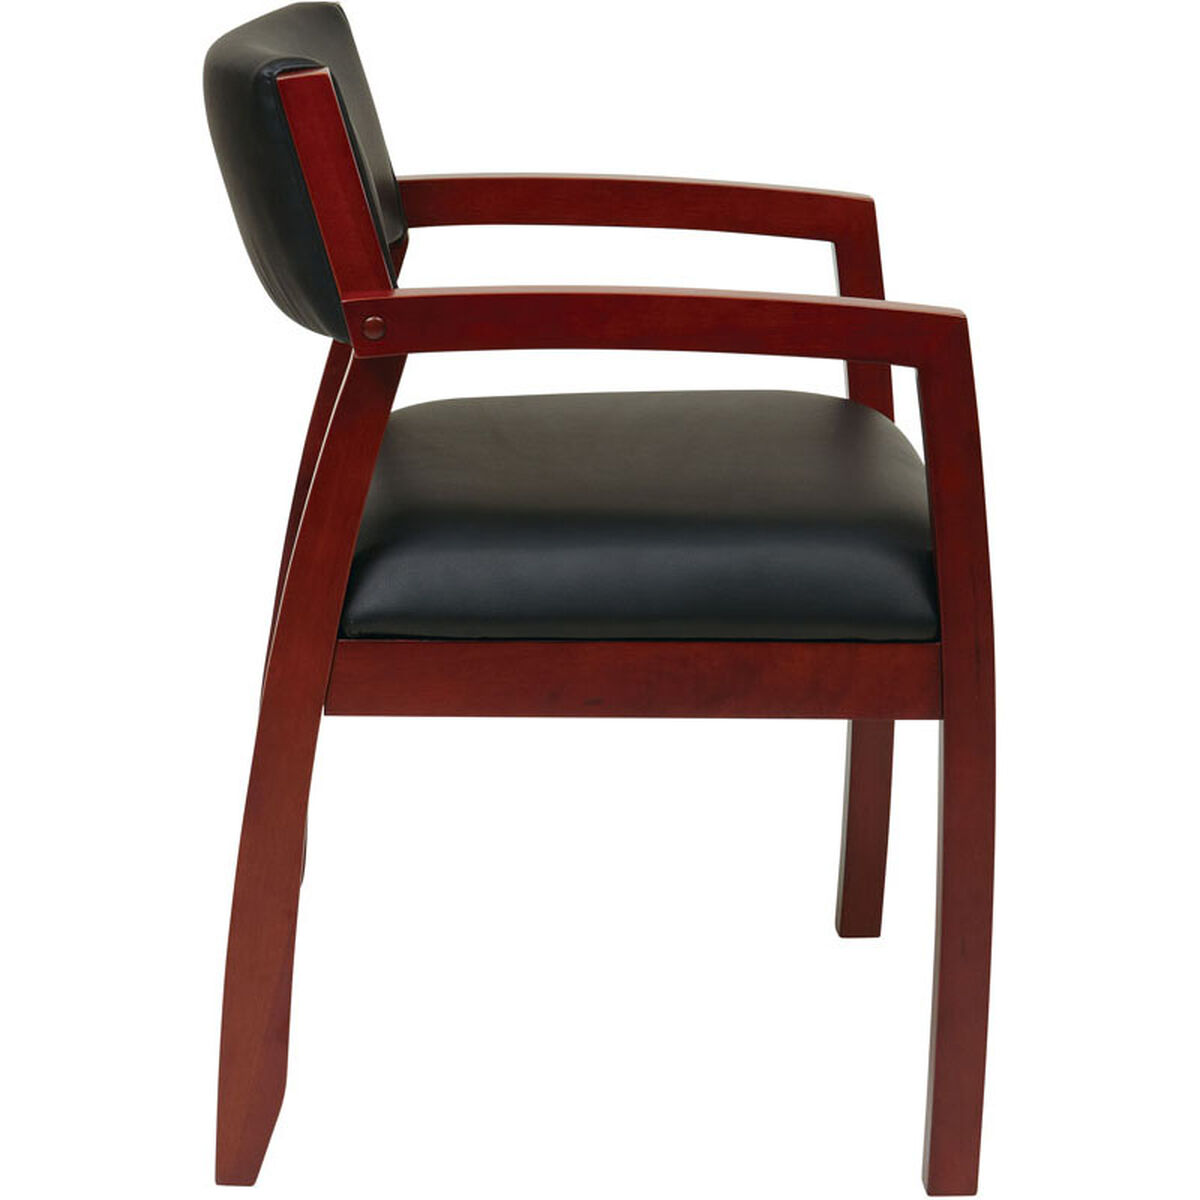 Our Osp Furniture Napa Bonded Leather Guest Chair With Upholstered Back Cherry Is On